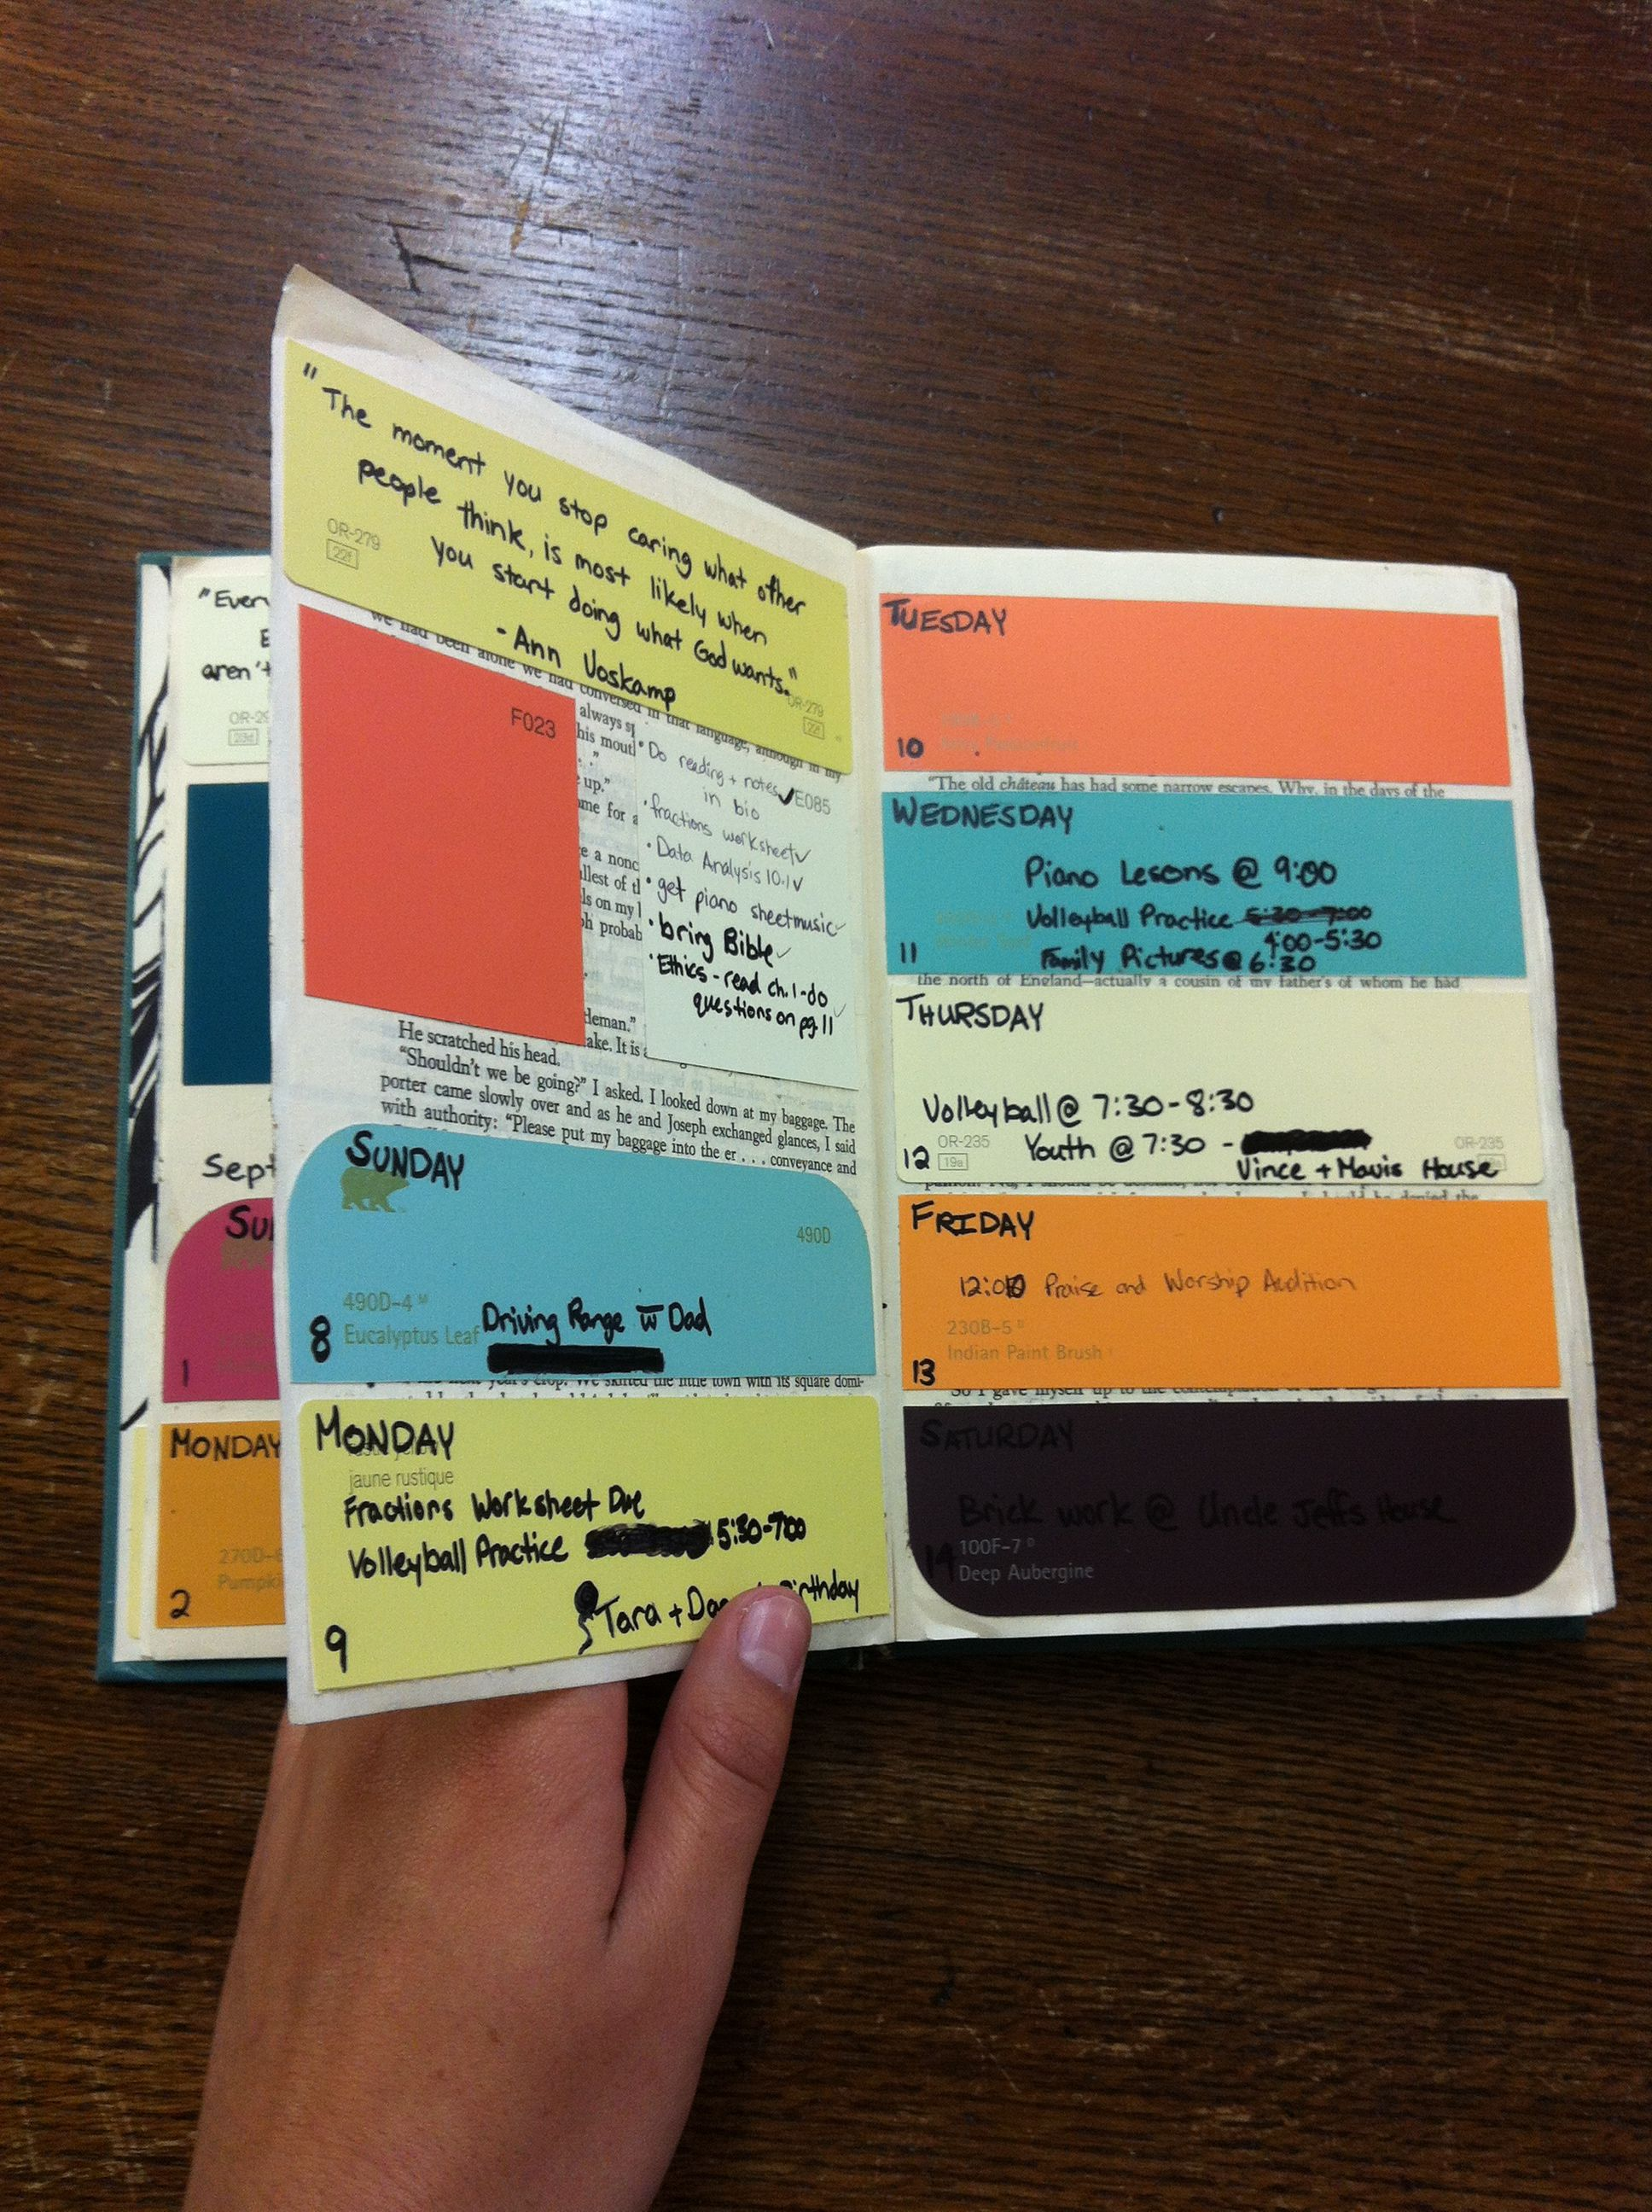 Diy Paint Sample Agenda By Myka Plett  Things To Try